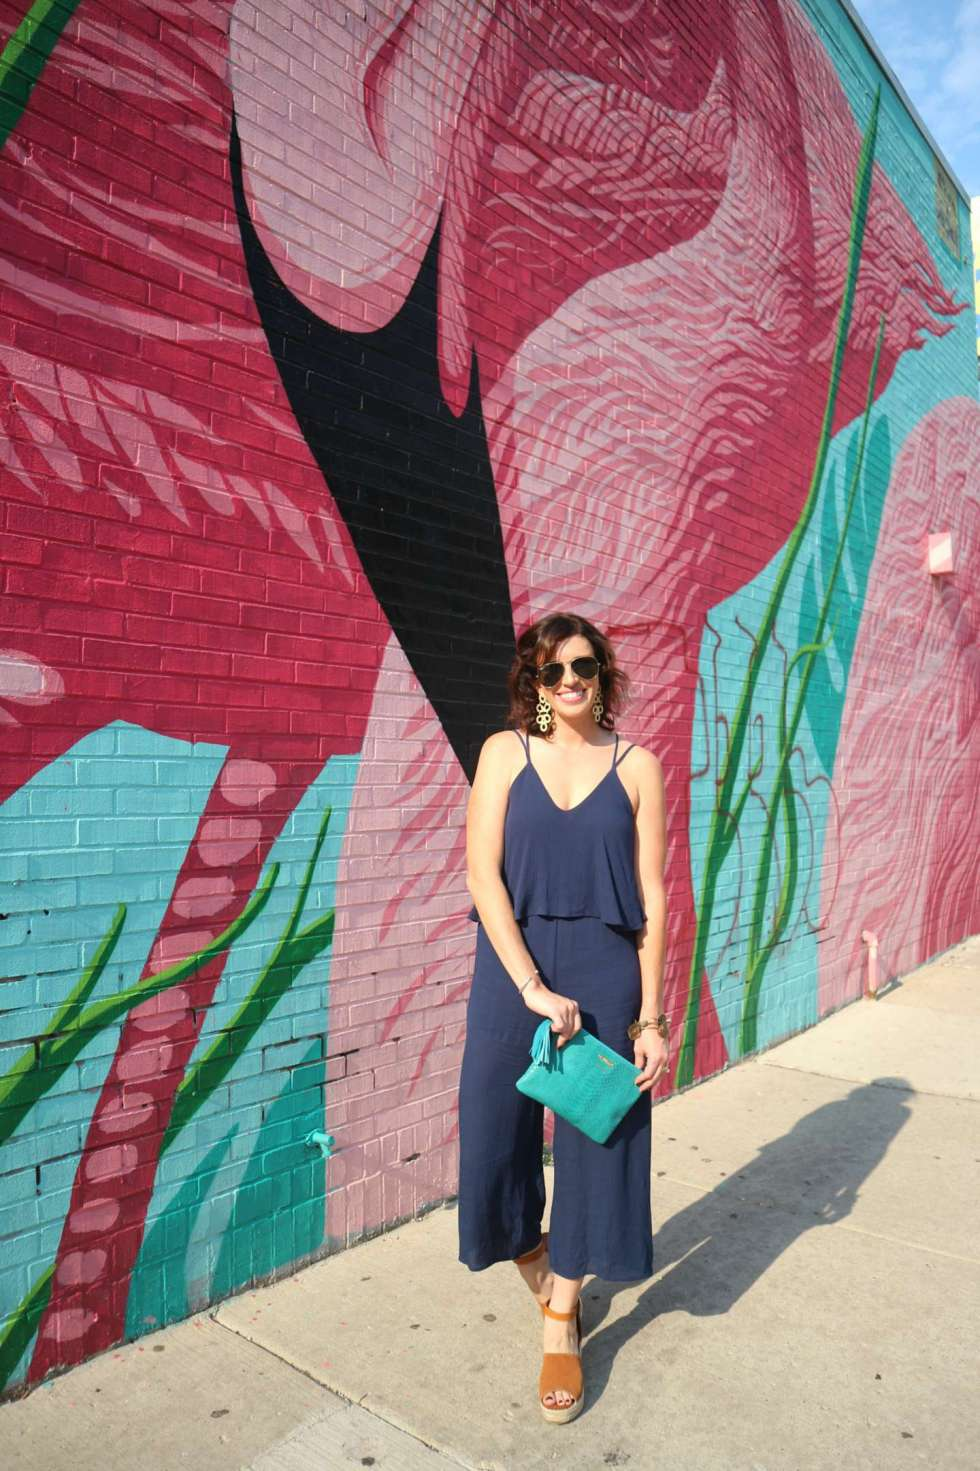 My Favorite Rompers from Chicago by NC fashion blogger I'm Fixin' To - I'm Fixin' To - @mbg0112